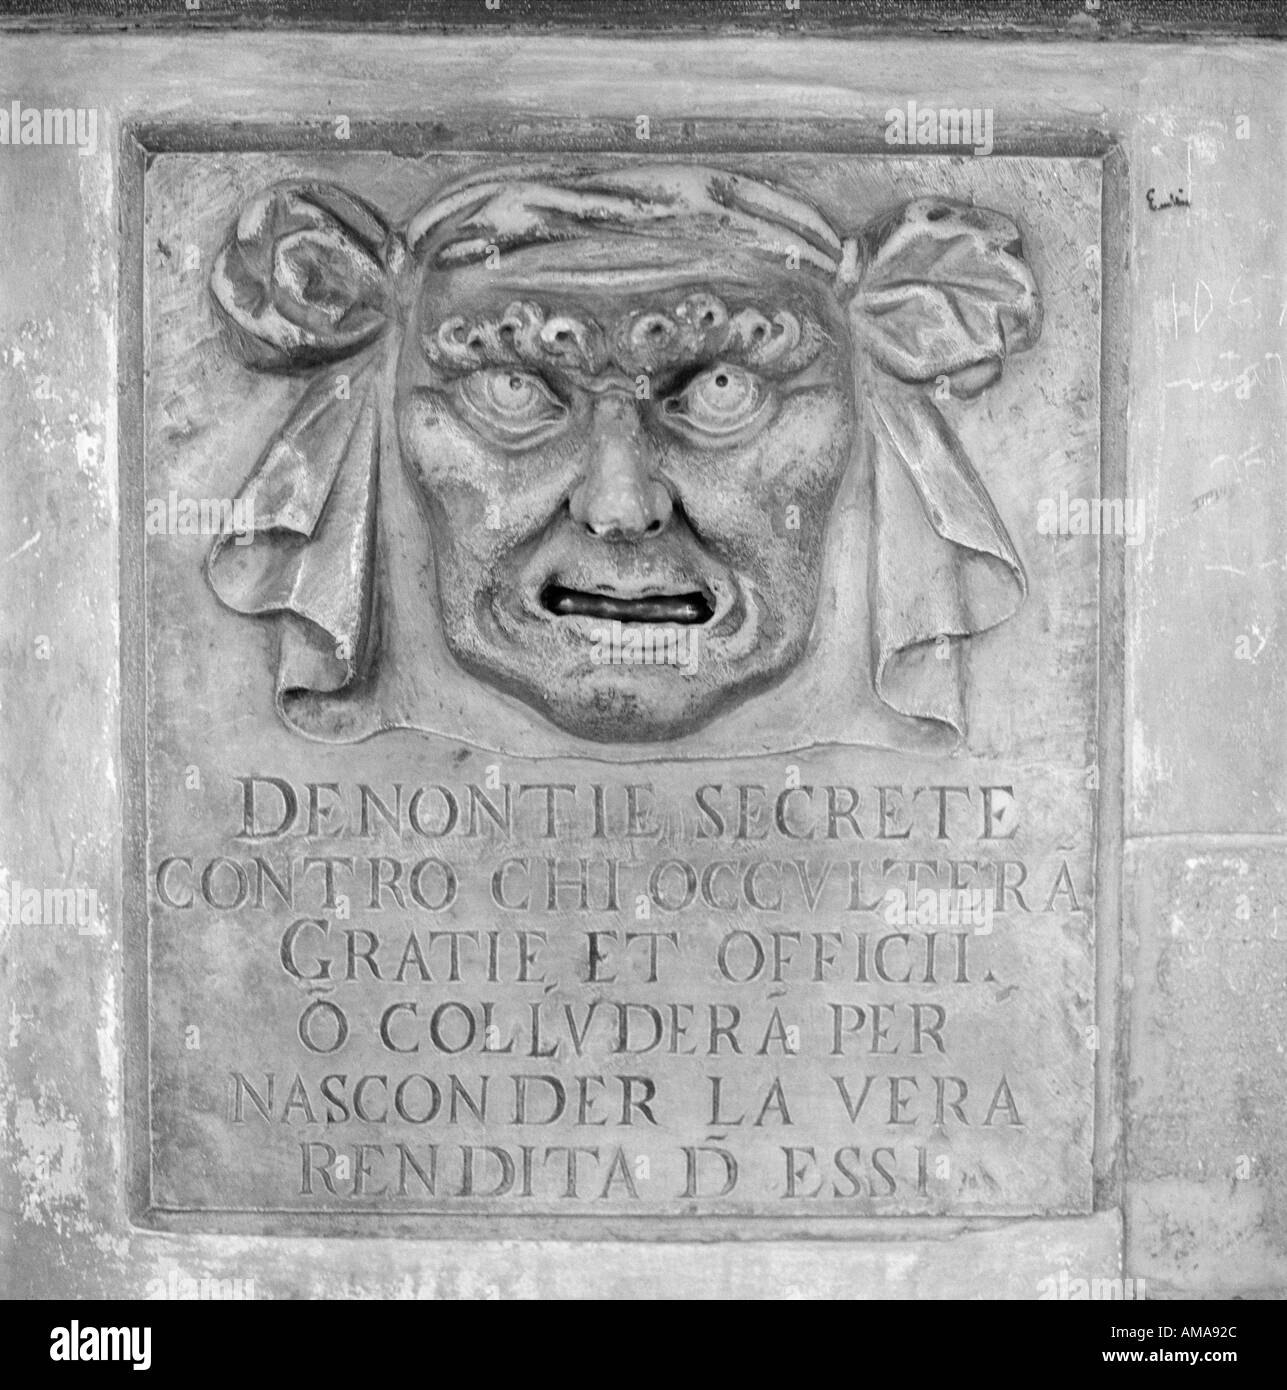 Sinister device for people to secretly denounce corrupt officials collecting bribes at the Doge s Palace Venice Italy Stock Photo